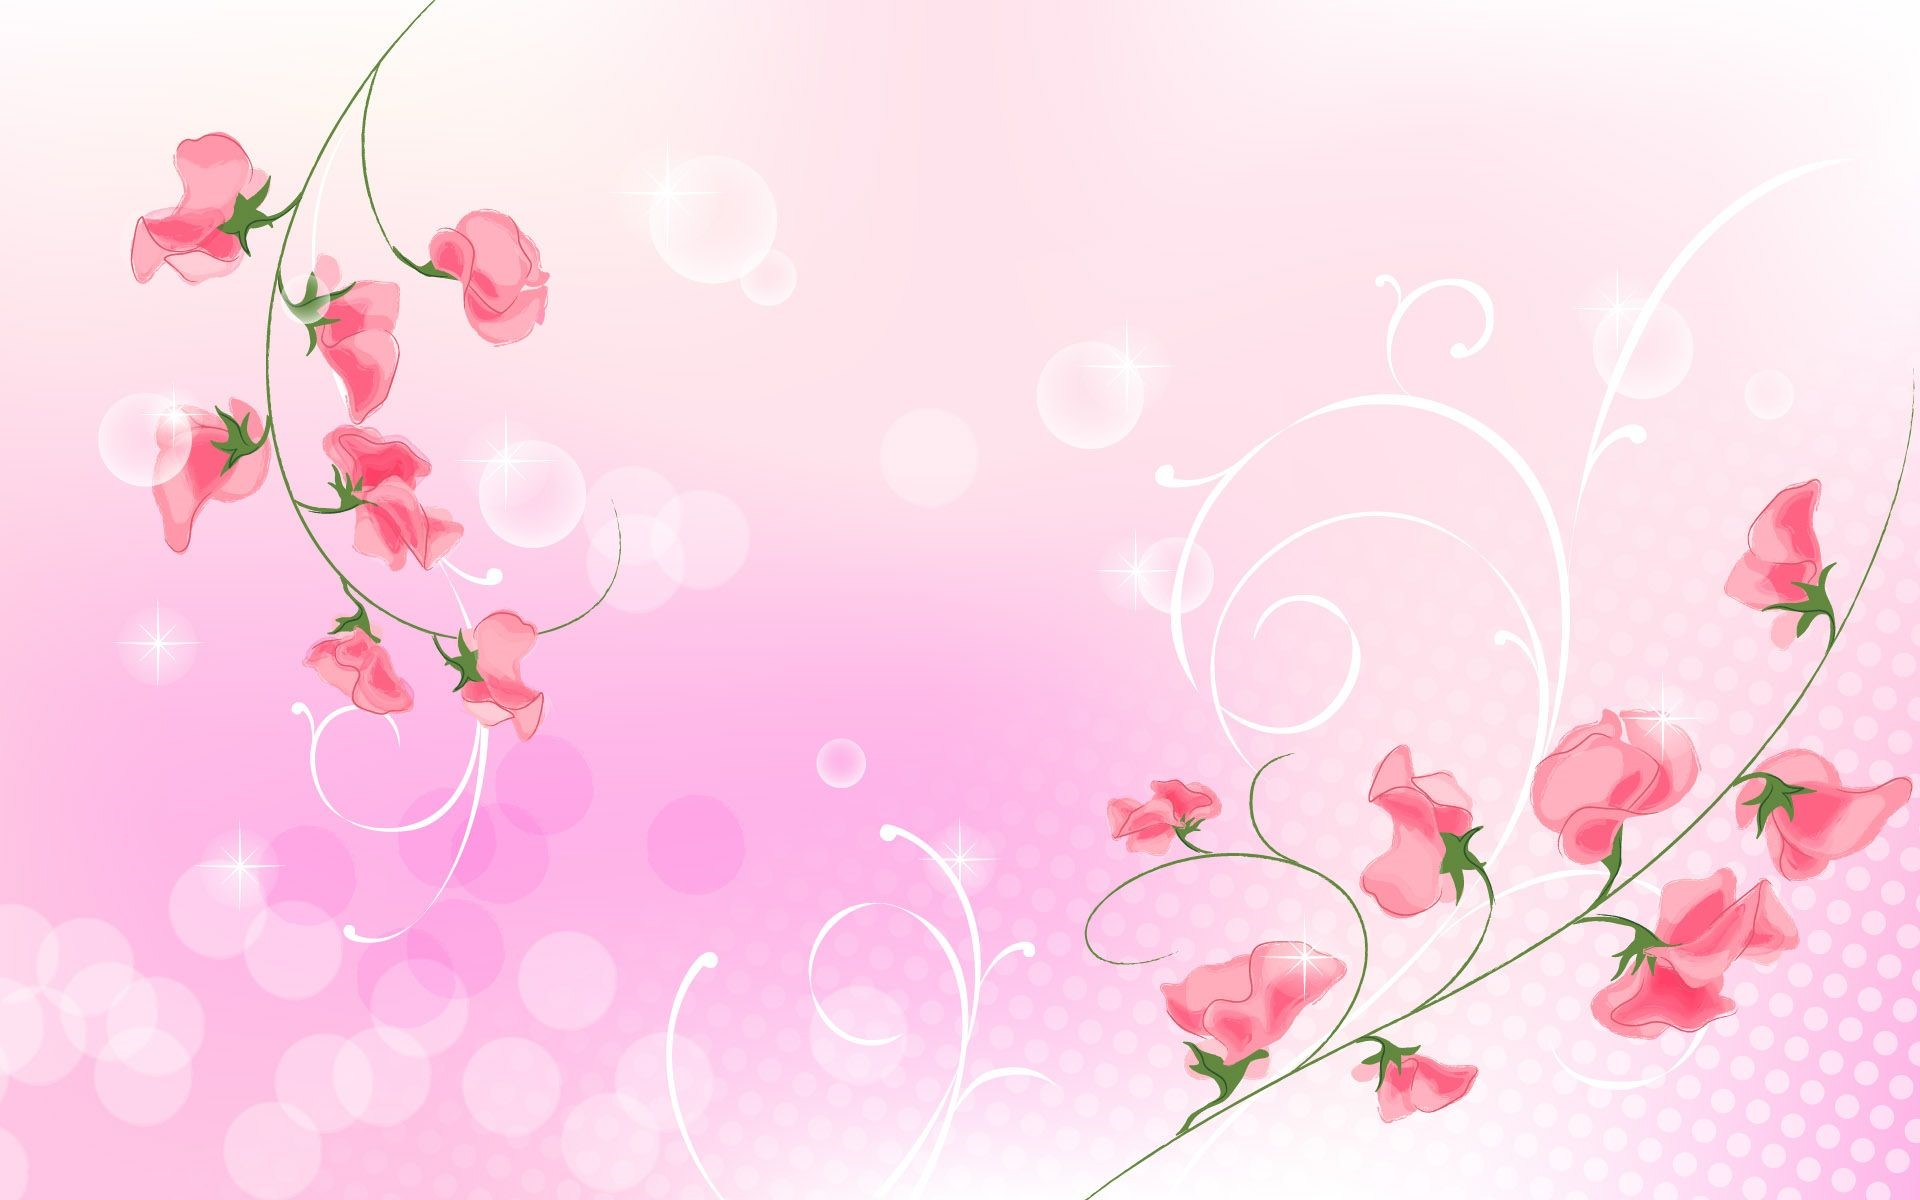 Abstract Floral Mobile Wallpapers Wallpaper Download High